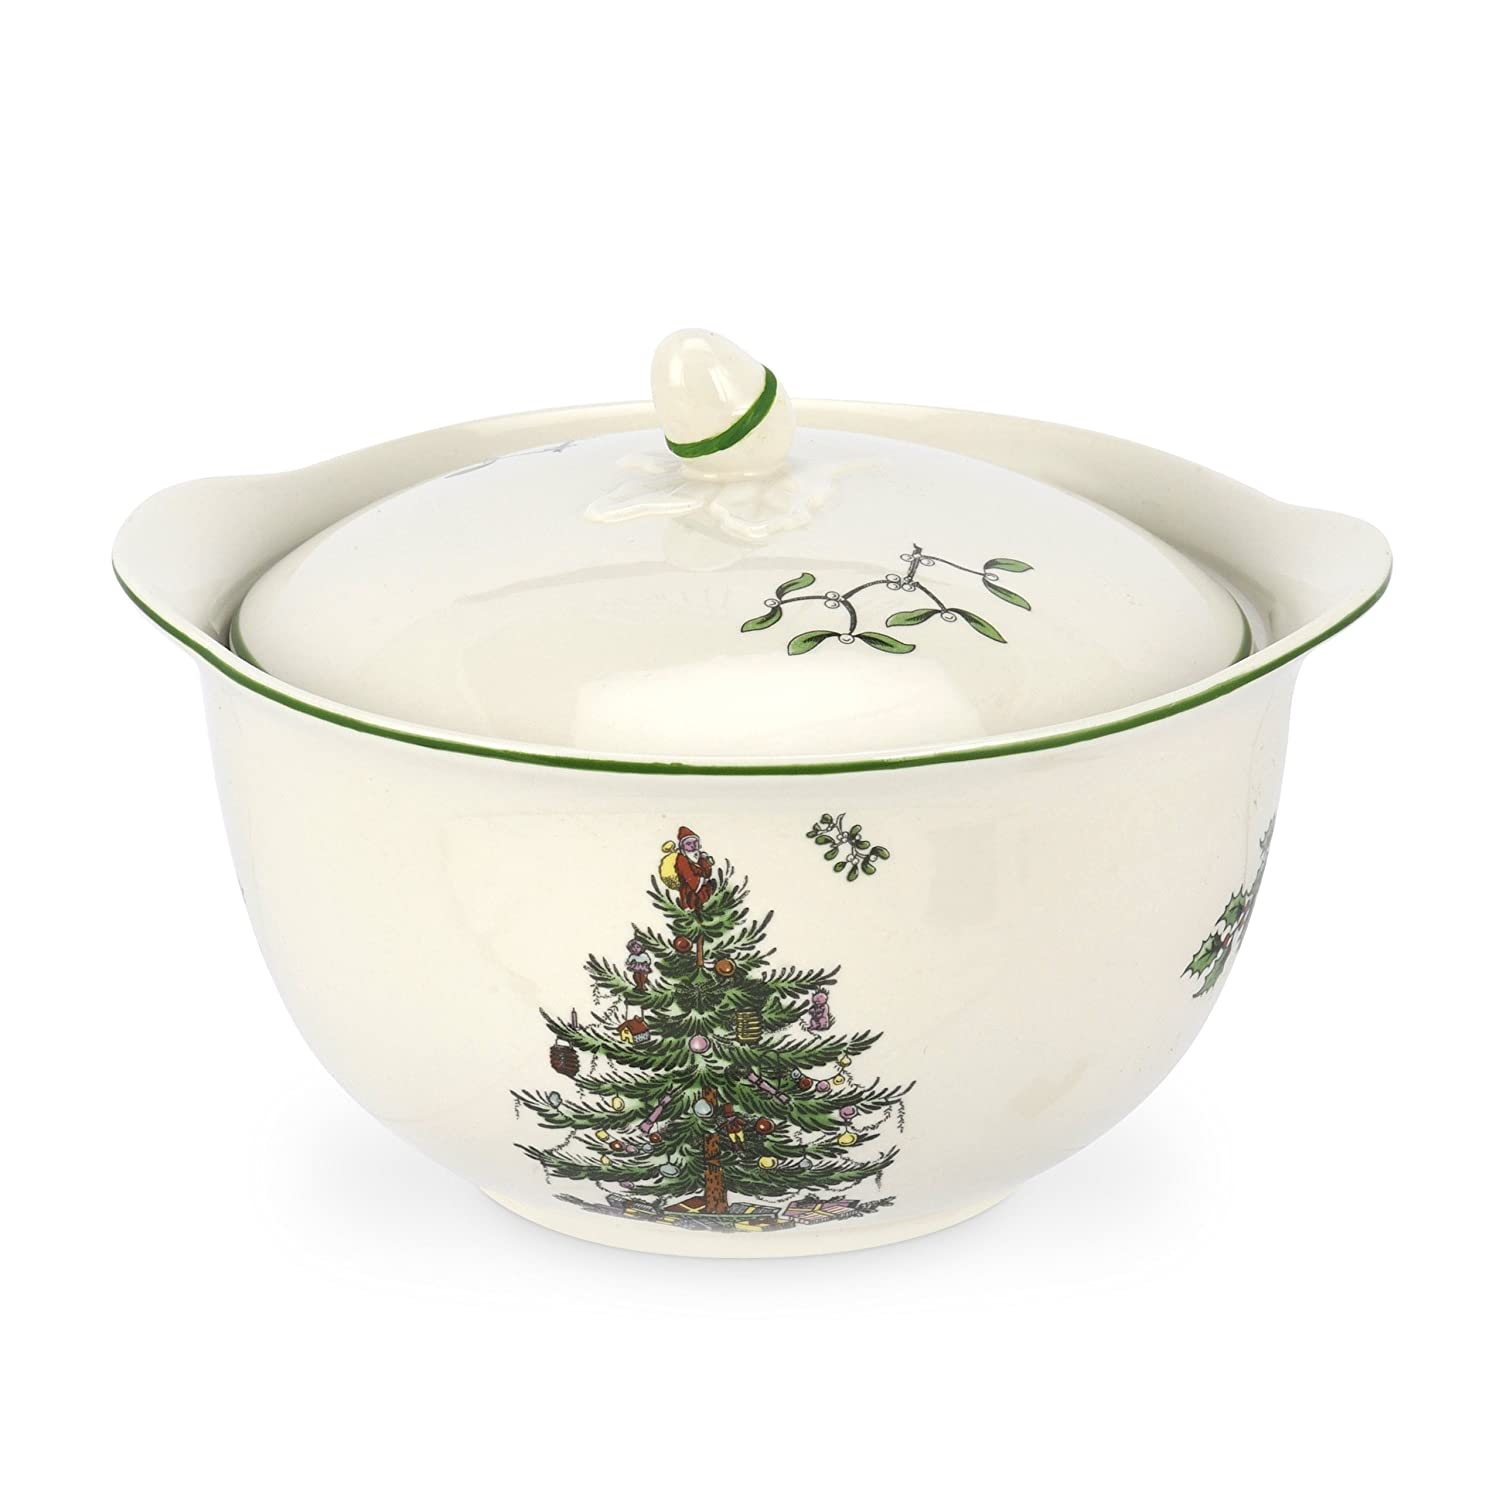 Spode Christmas Tree Individual Casserole with Handle, 4-Inch Portmeirion USA 1536784